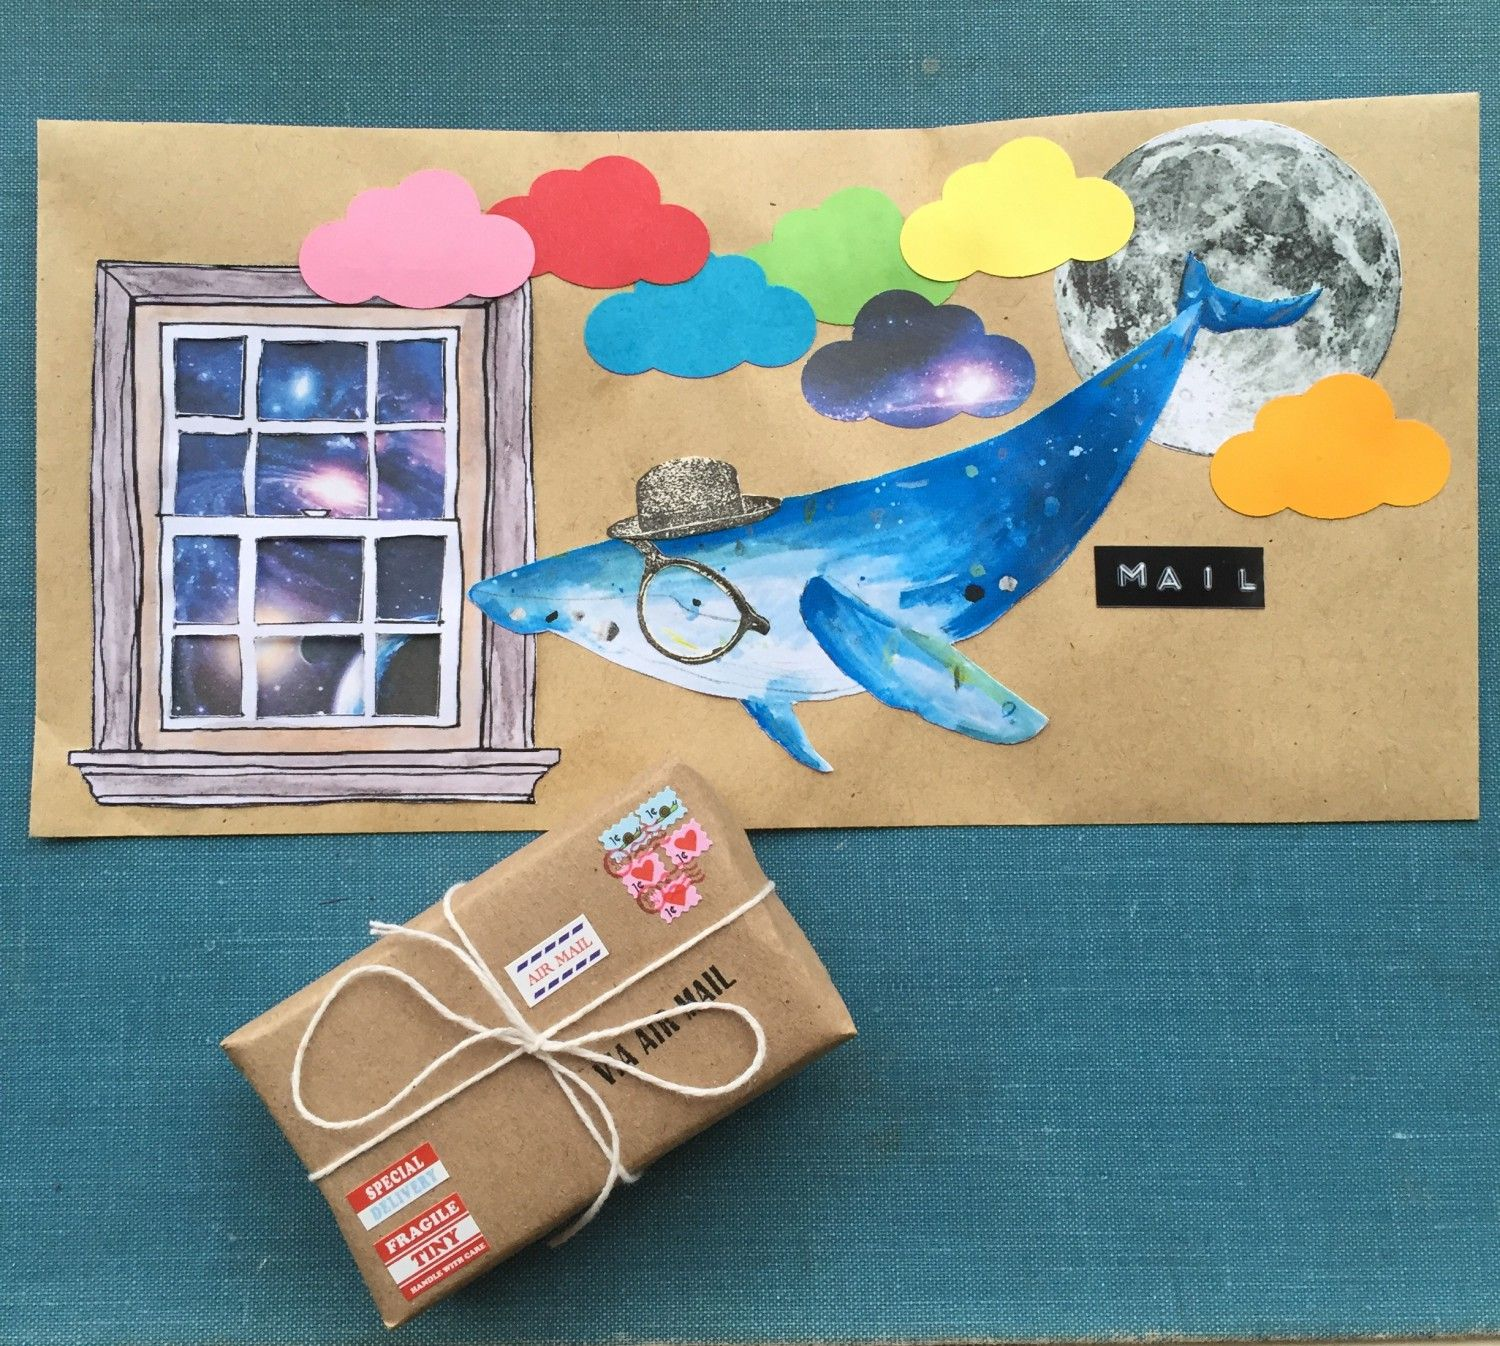 The Whale Mail   Sending Mail Smiles. Posting Best Wishes. Spreading Creativity.